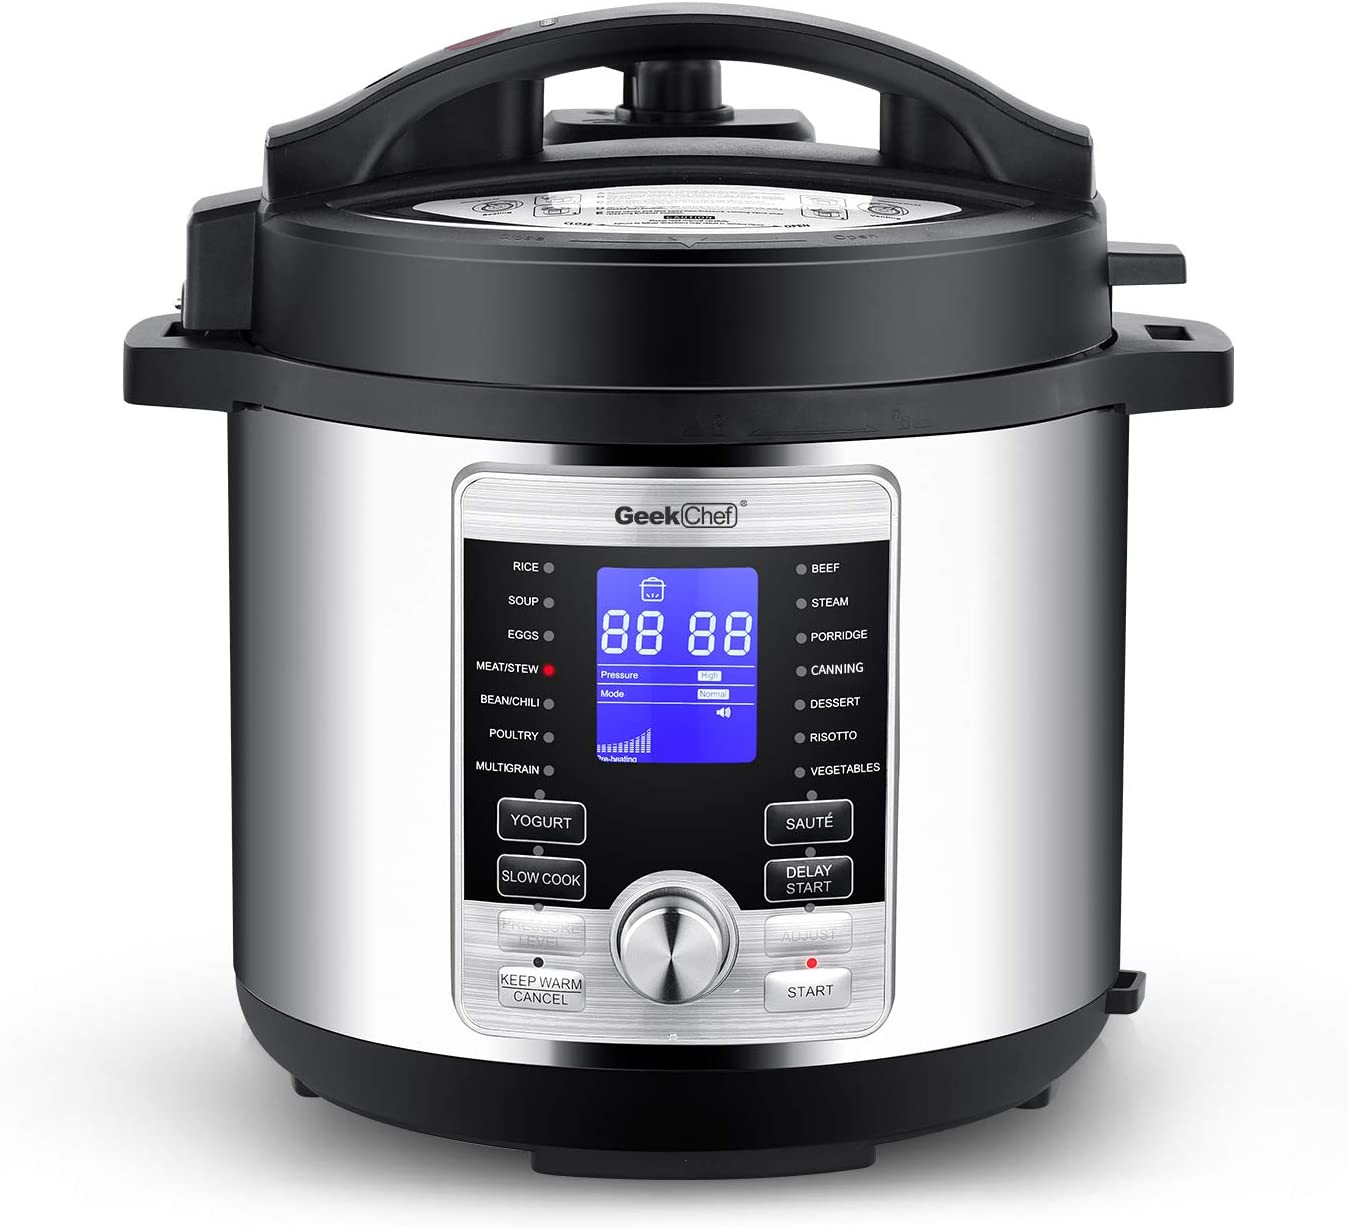 Geek Chef 6 Qt 17-in-1 Multi-Use Electric Pressure Cooker Stainless Steel Inner Pot Programmable LCD Display Digital Slow Cooker, Rice Cooker, Yogurt Maker, Egg Cooker, Sauté, Steamer, Warmer GP60D